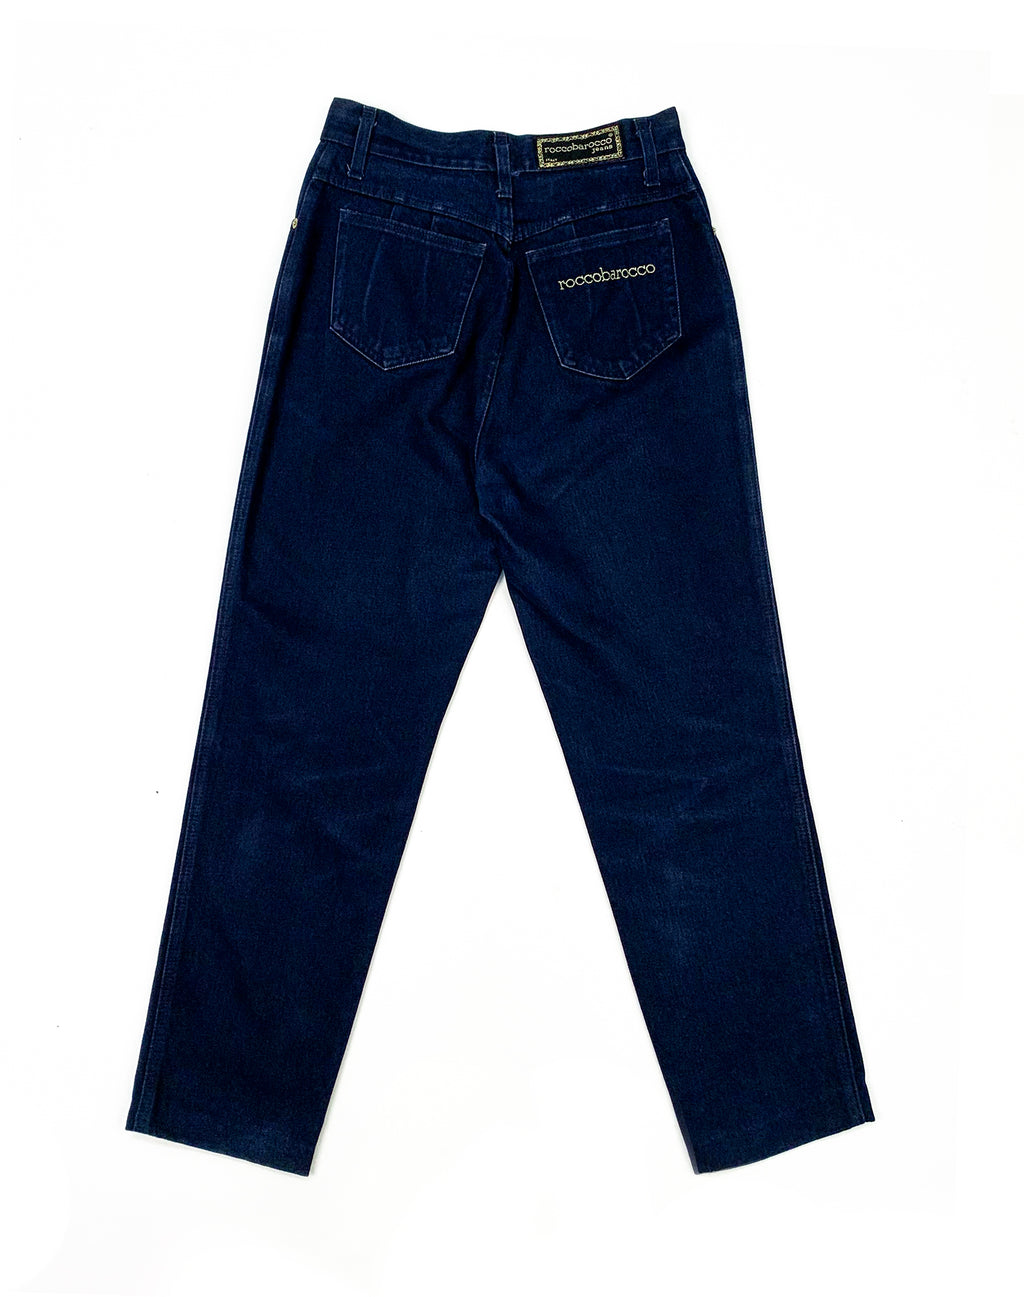 ROCCOBAROCCO DARK WASH DENIM JEANS